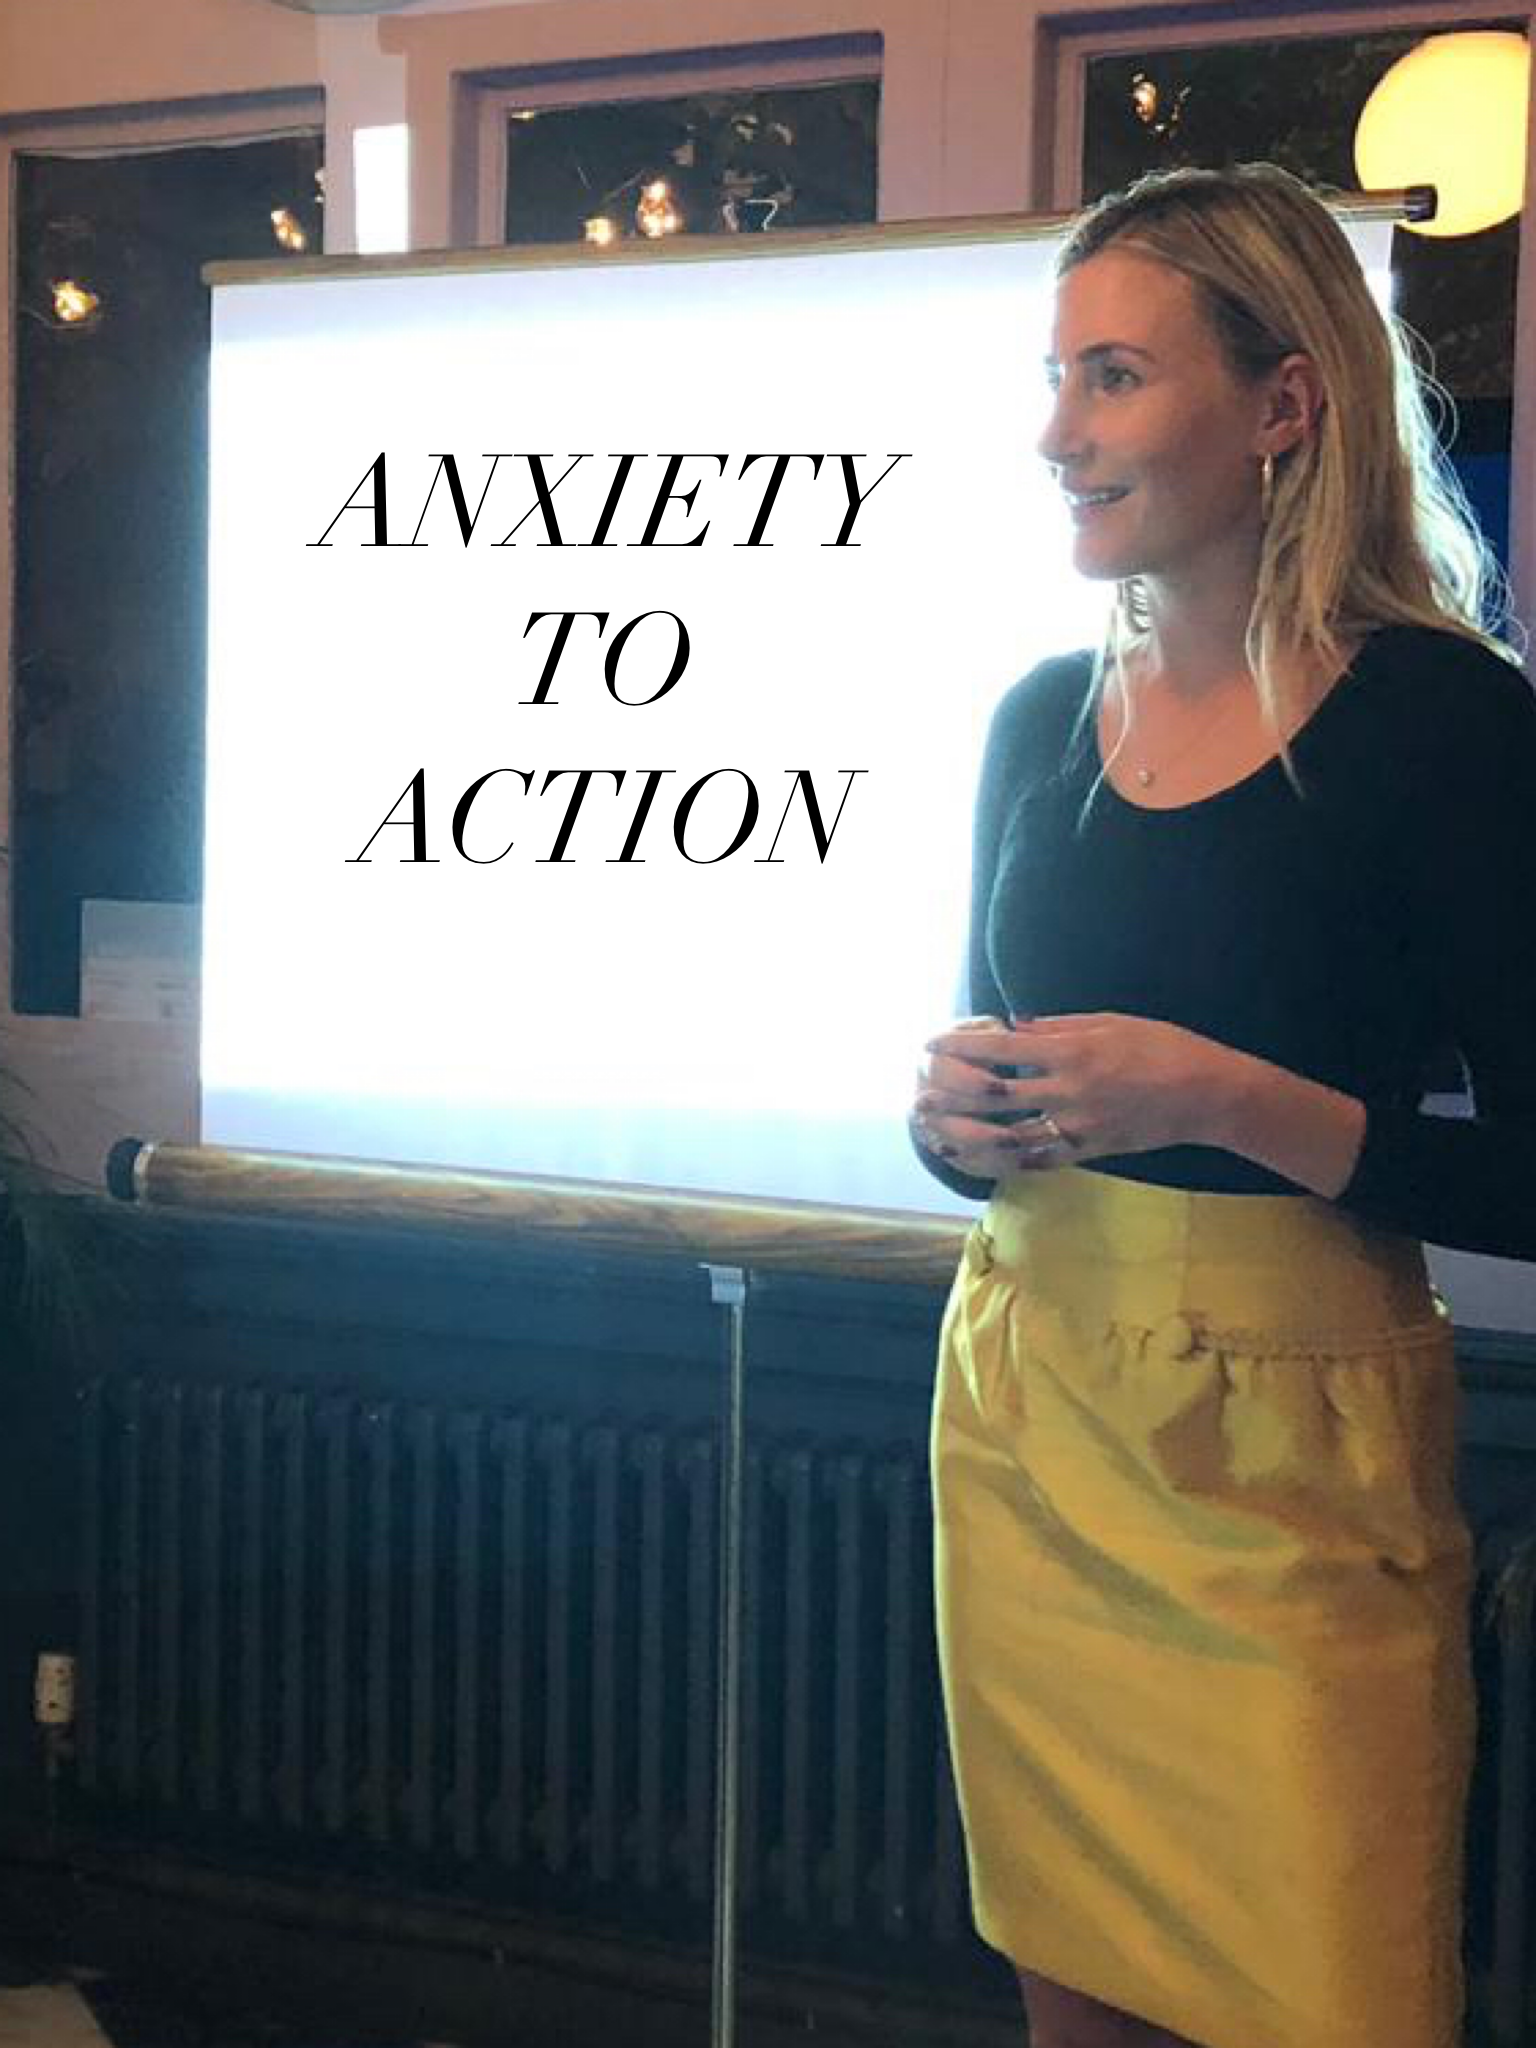 eco-anxiety workshop oxford psychology dr patrick kennedy-williams megan kennedy woodard